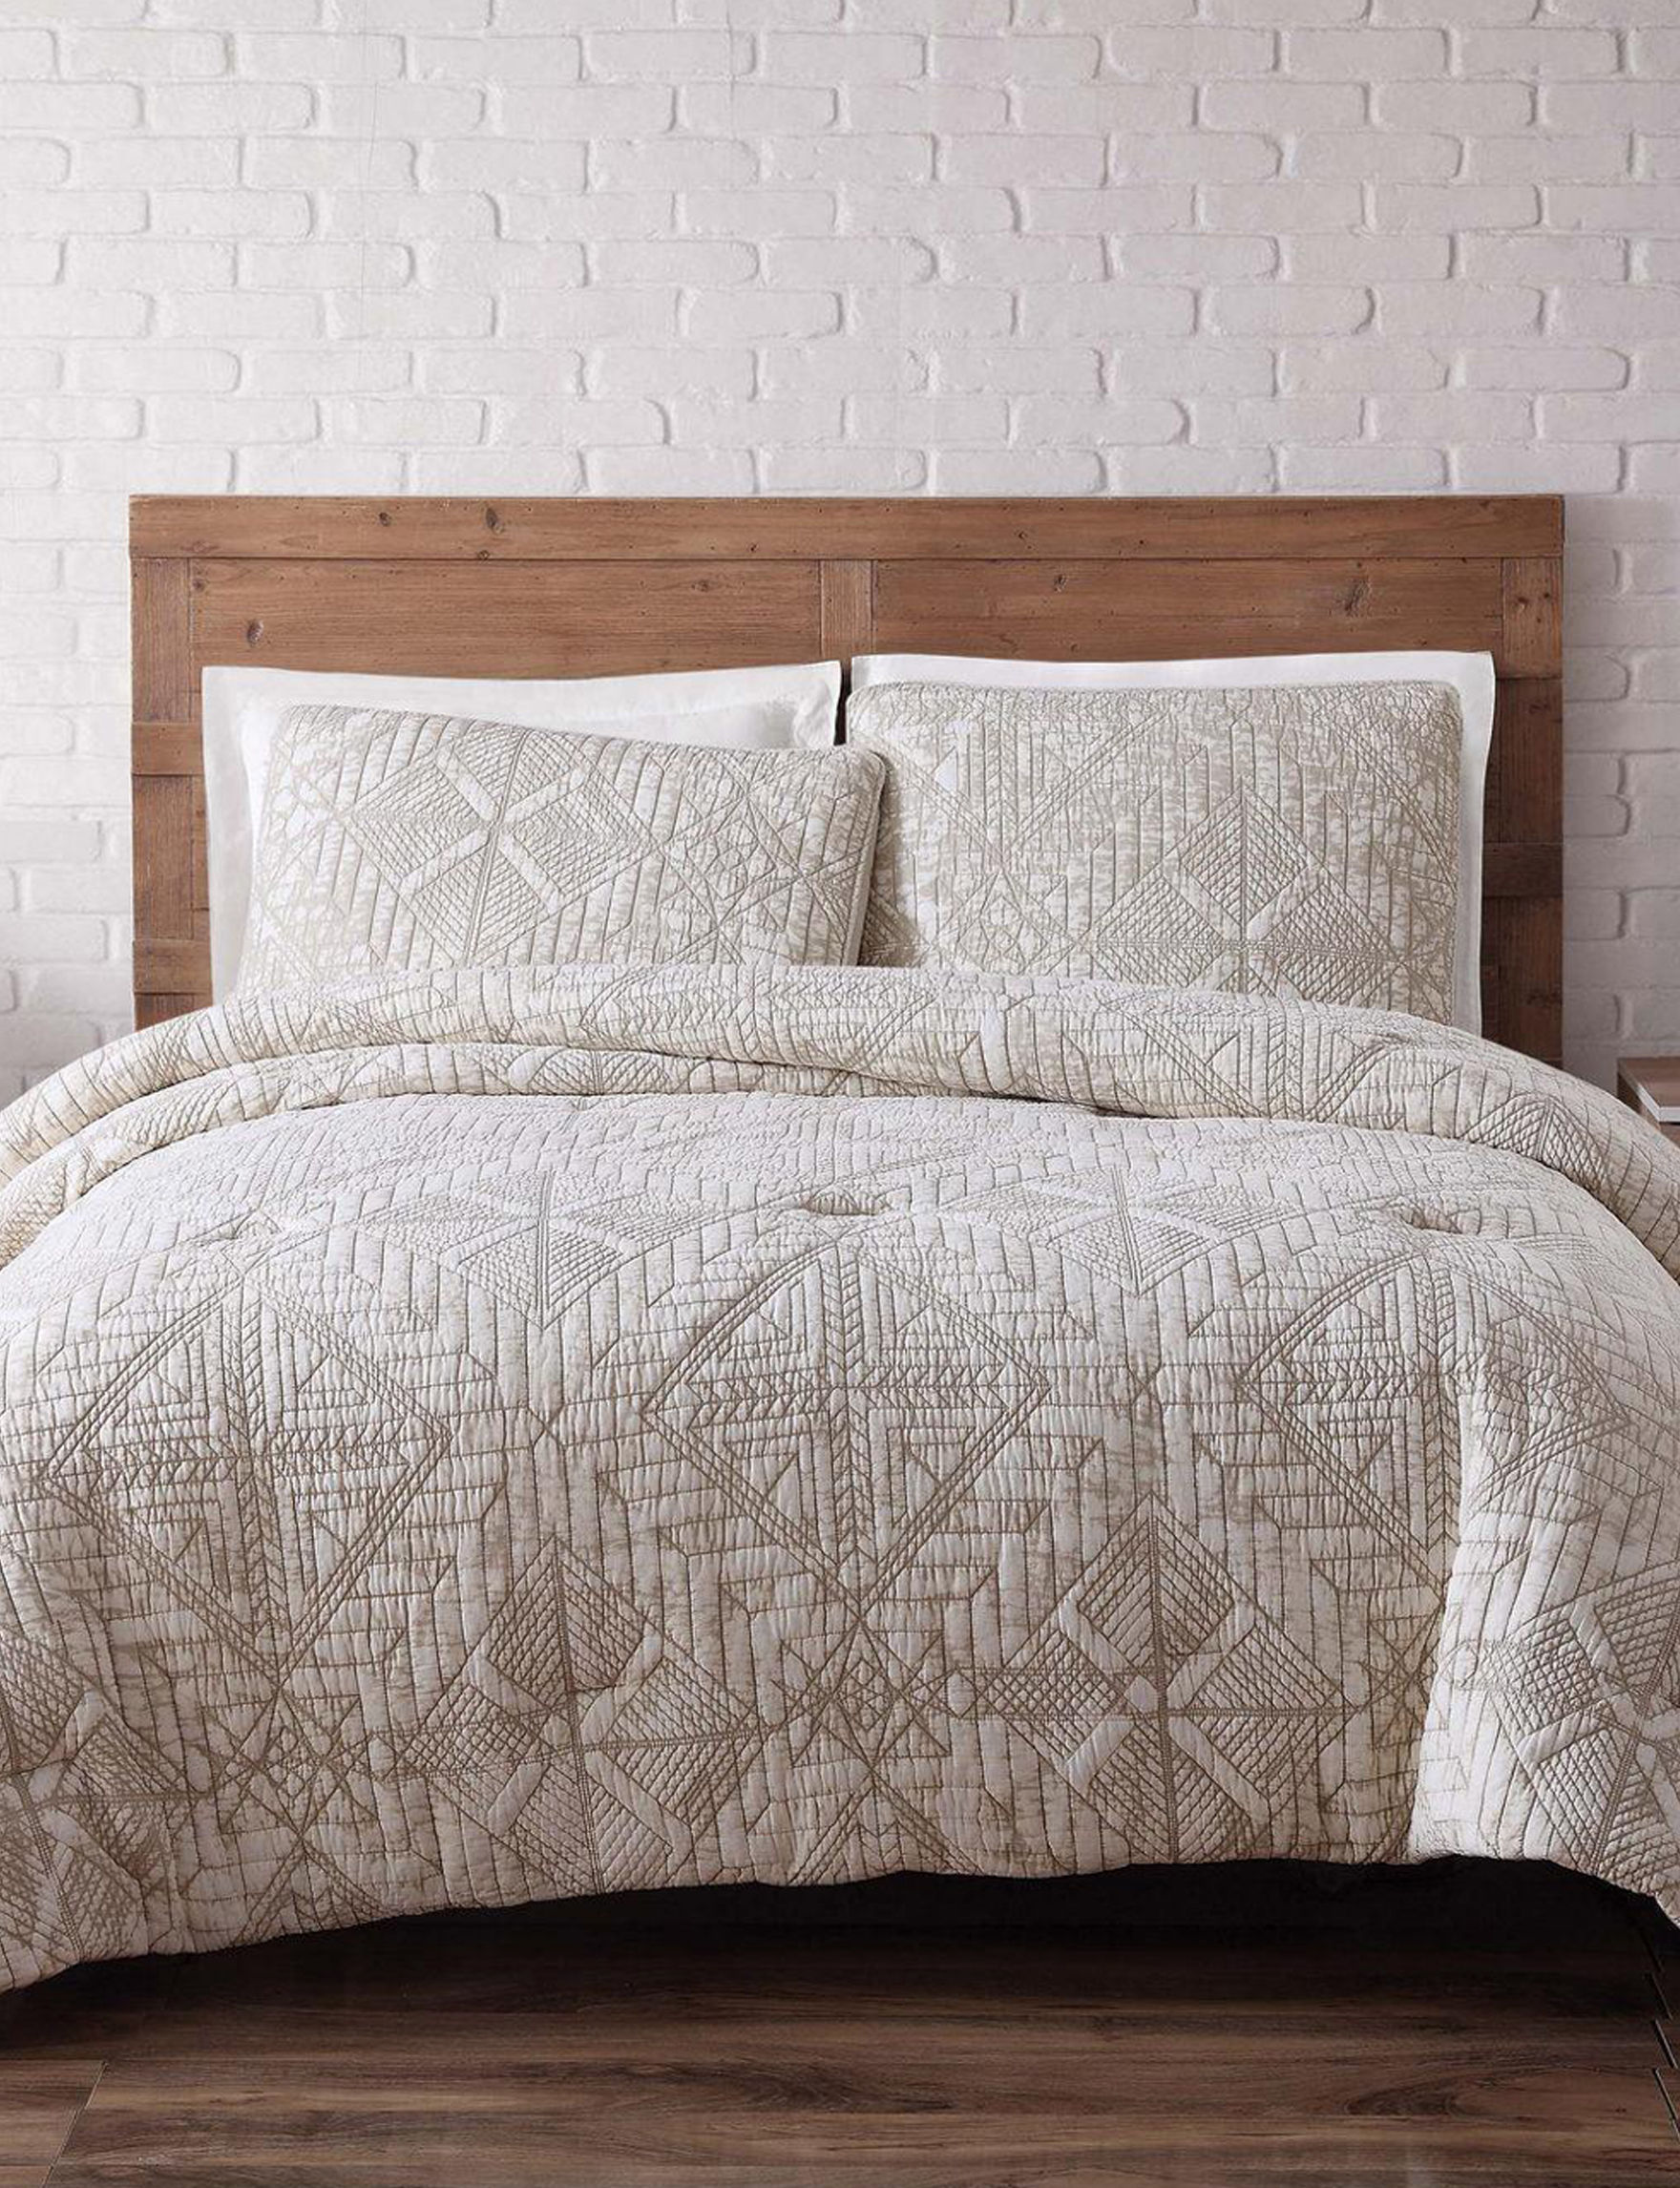 Brooklyn Loom White Comforters & Comforter Sets